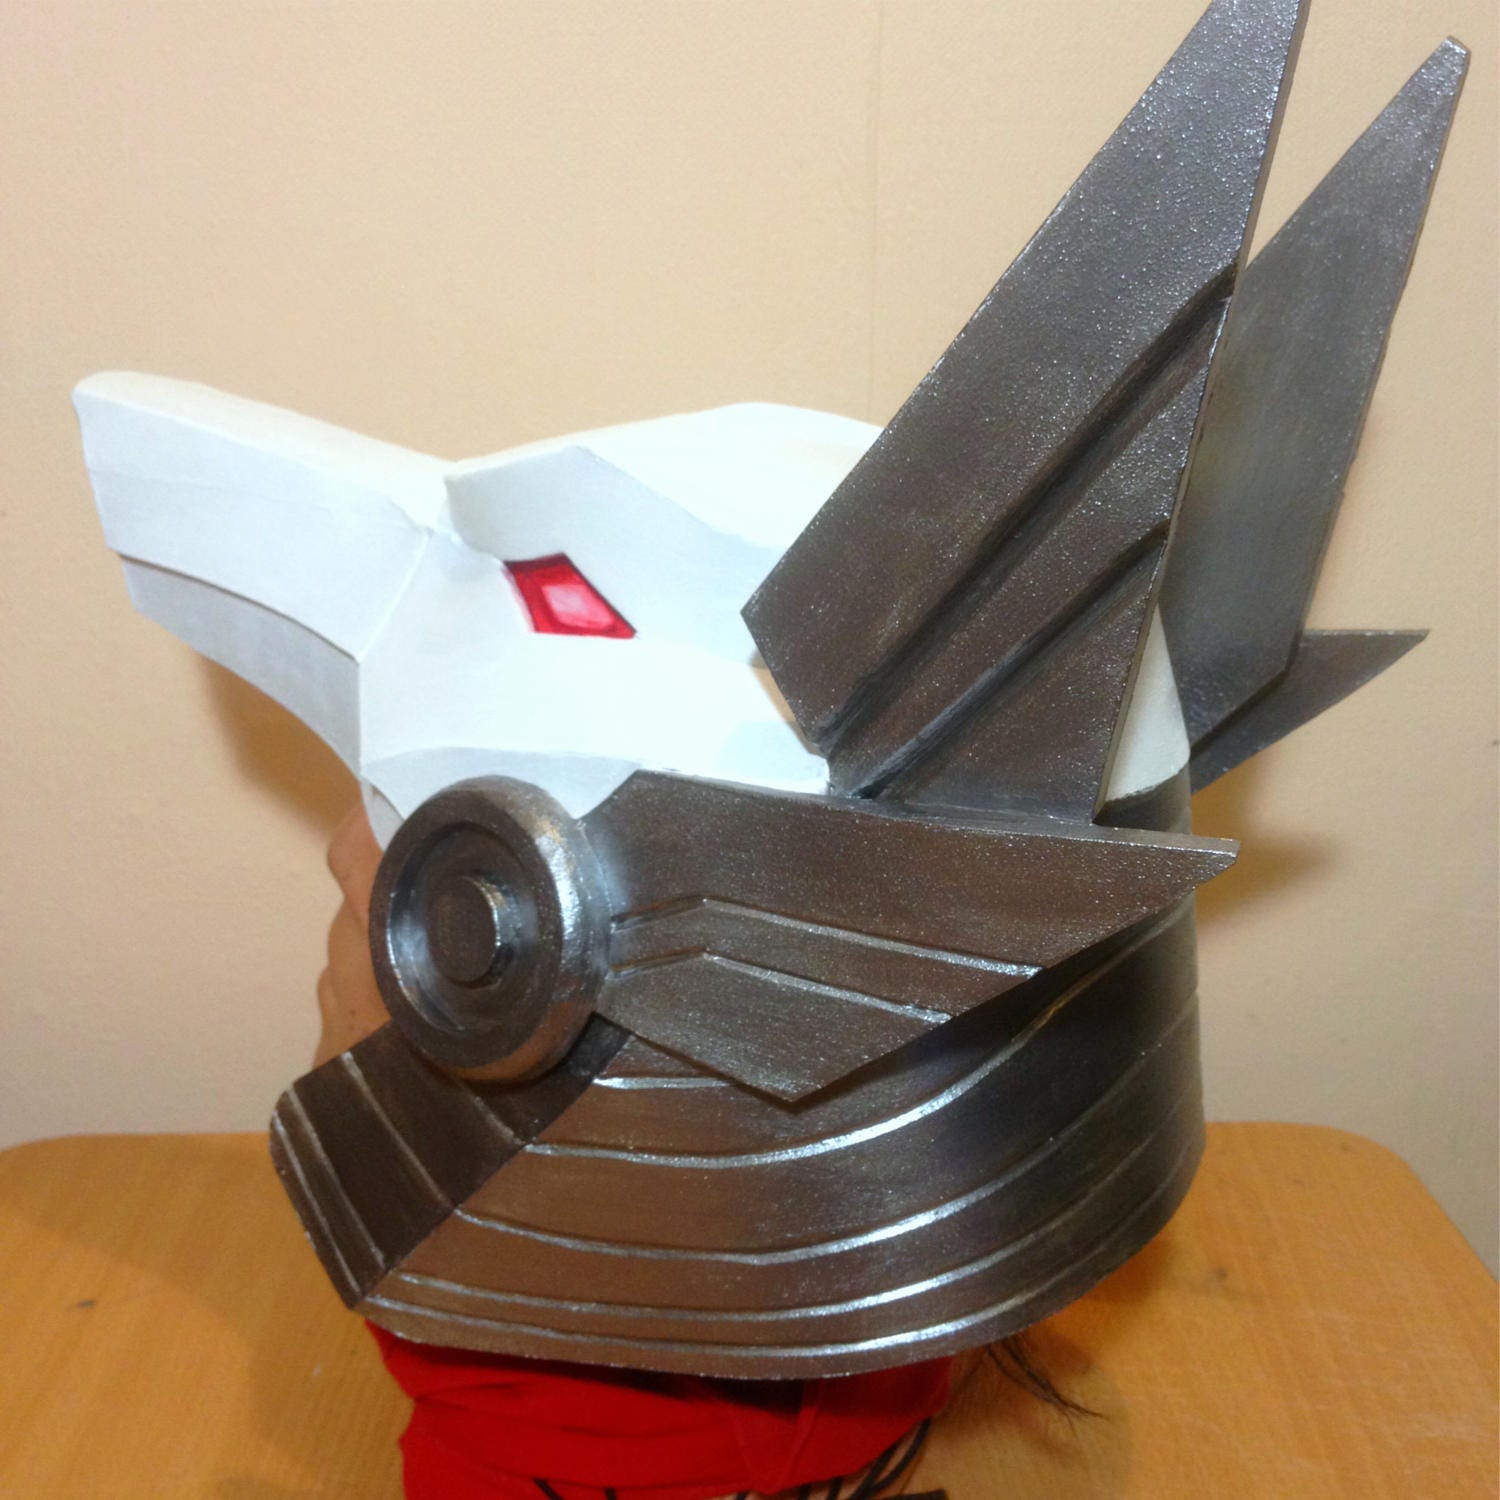 MADE TO ORDER Overwatch Anubis Pharah Helmet Jackal Mask